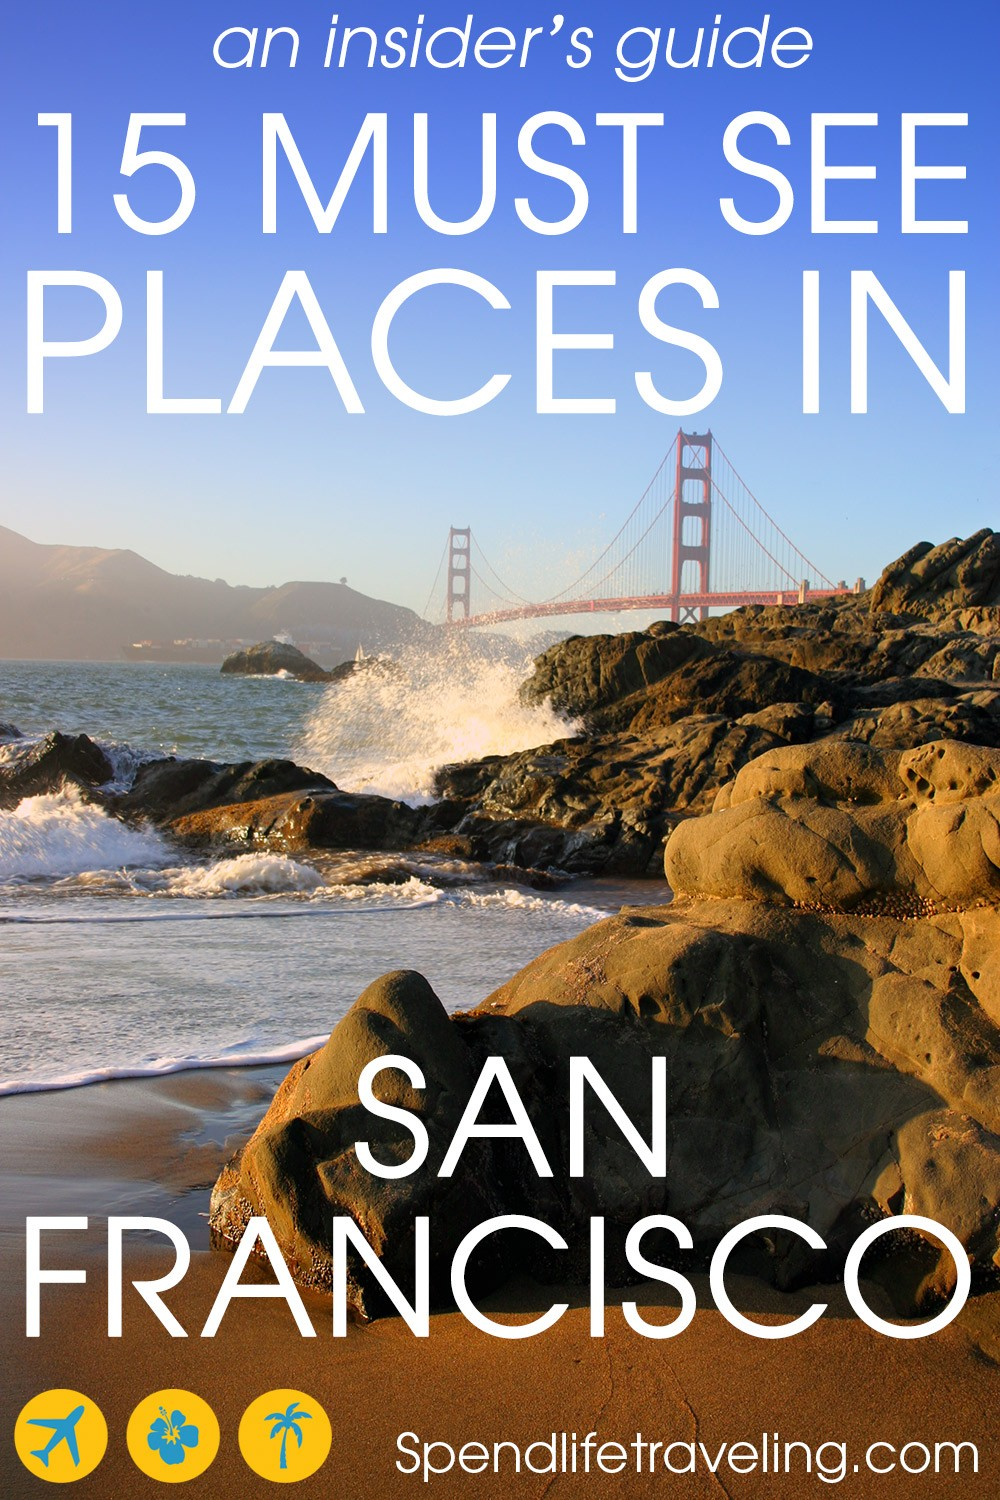 15 Must See Places in San Francisco, USA - An Insider's Guide. #SanFrancisco #travelSanFrancisco